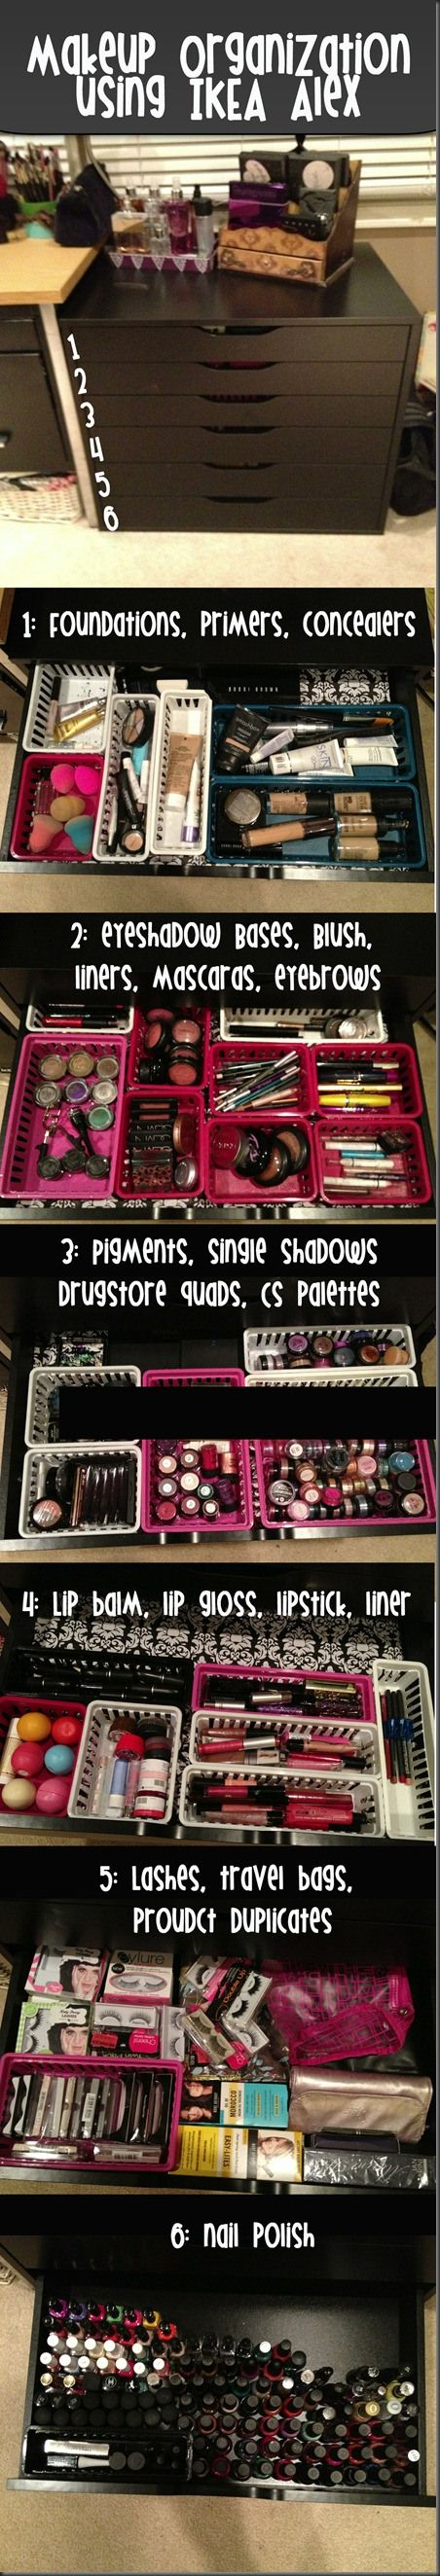 IKEA ALEX makeup storage organization. Yeah I NEED this!! On my list.